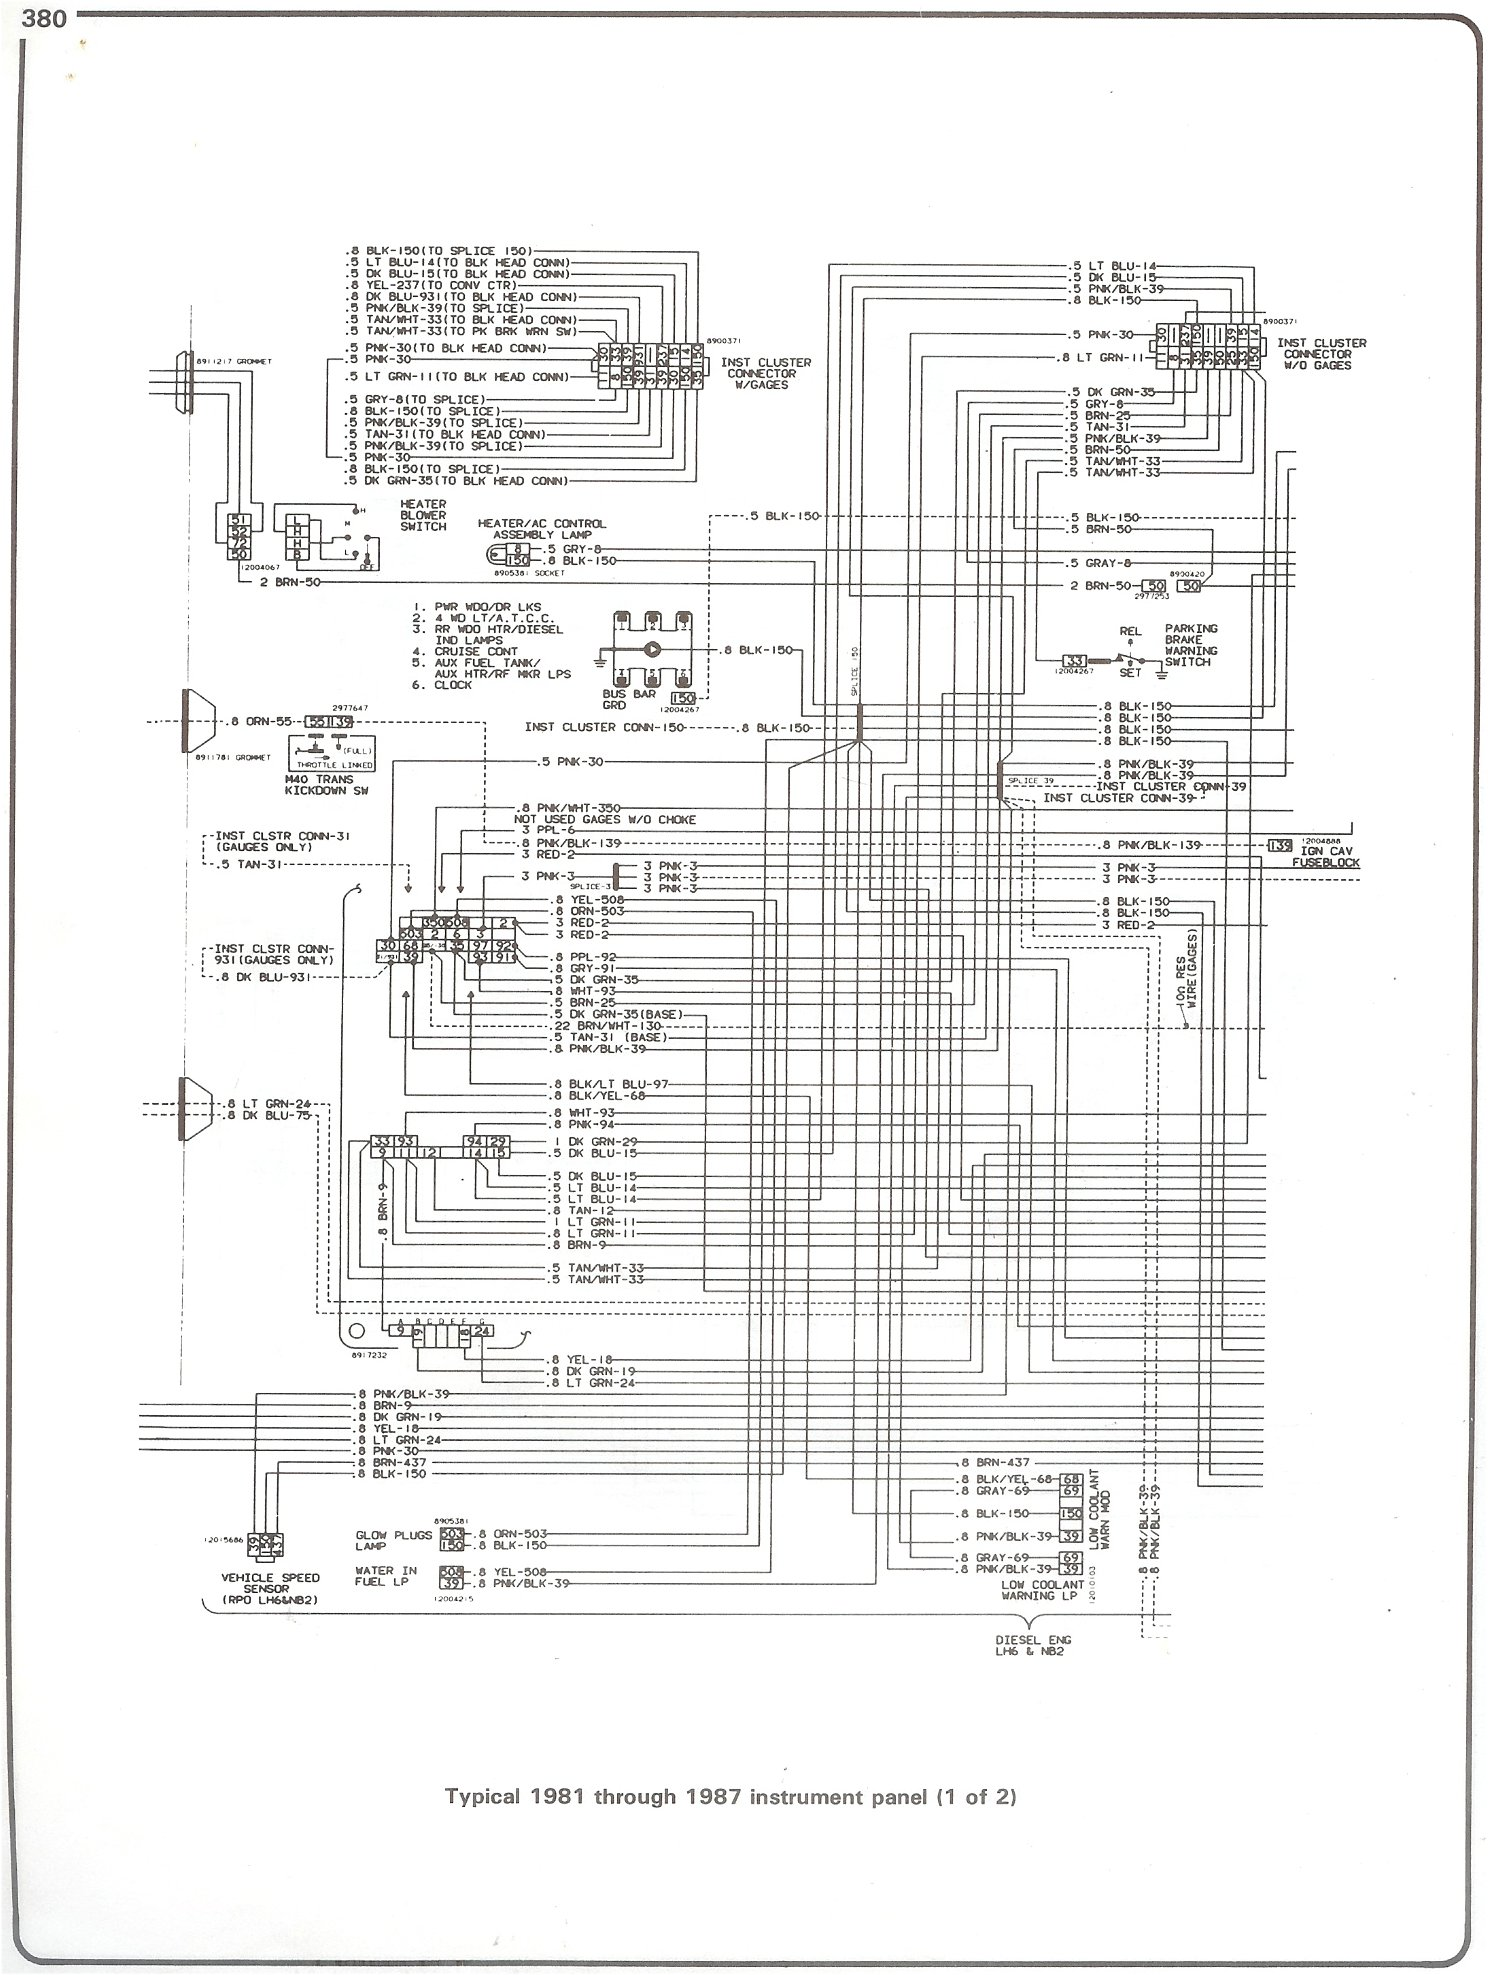 1979 Gmc Wiring Diagrams Guide And Troubleshooting Of Diagram General Complete 73 87 Gm Alternator